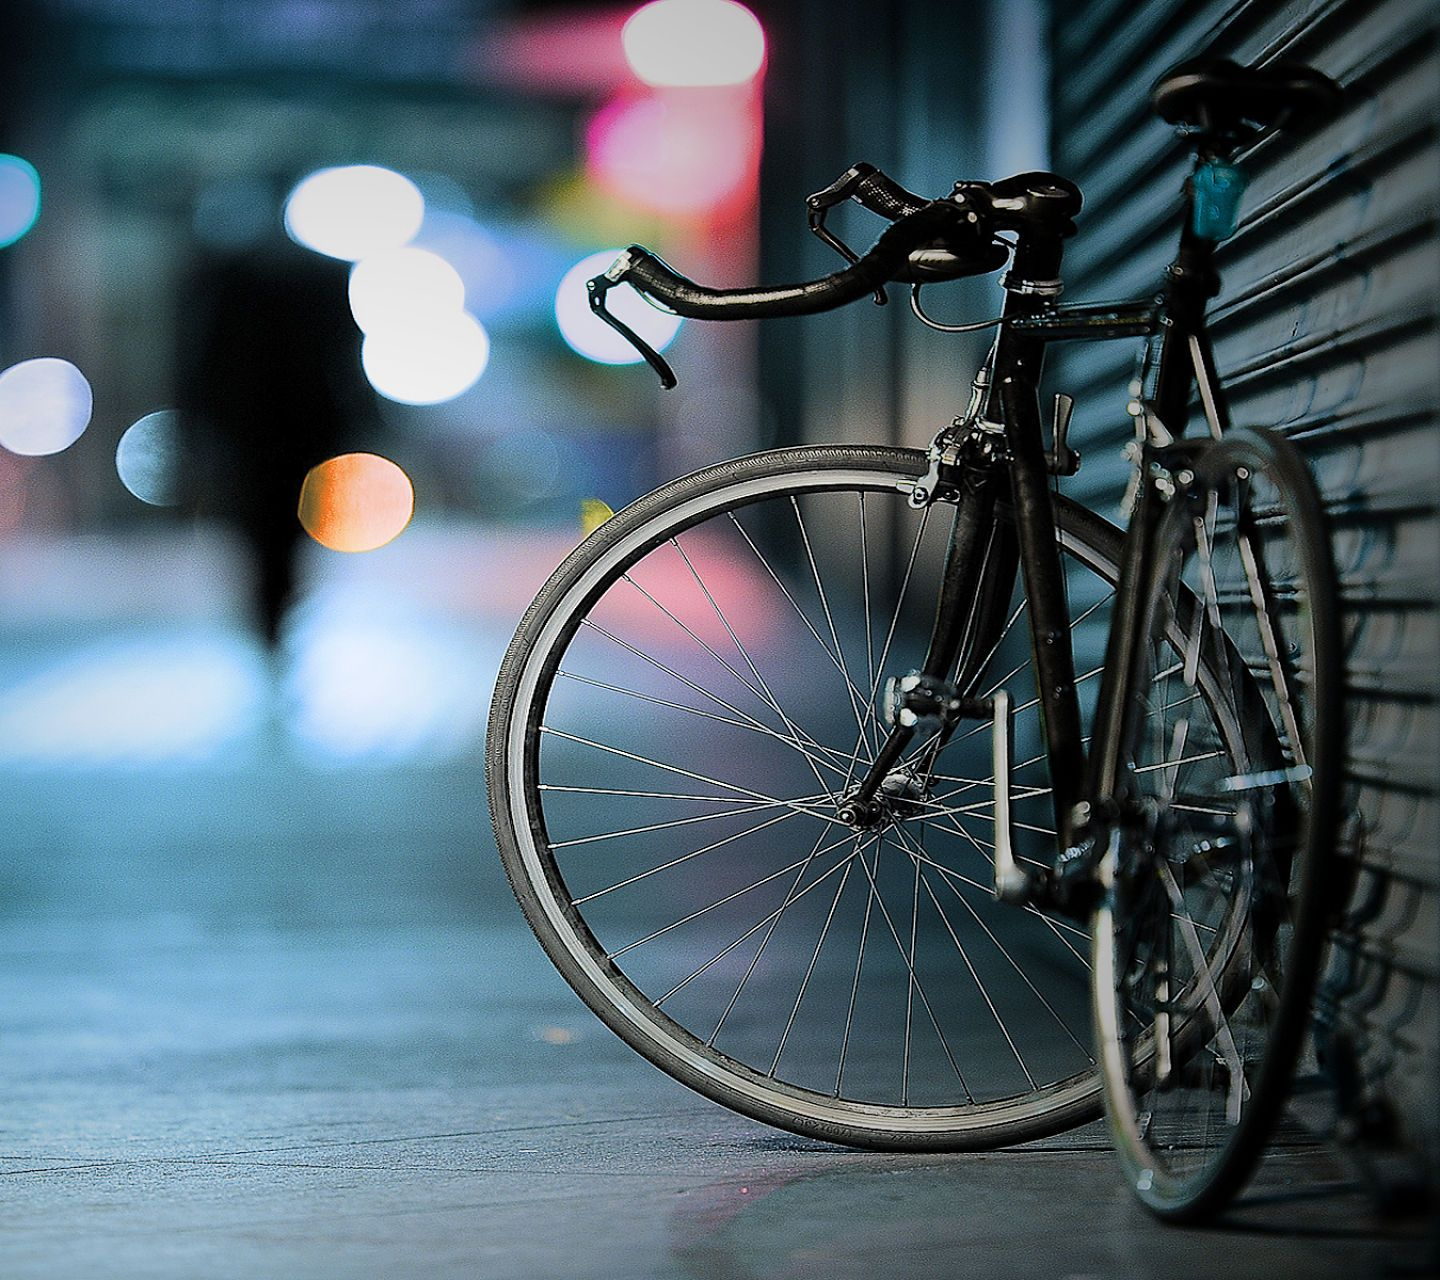 Wallpaper Phone Wallpapers Bike Bicycle Fixie